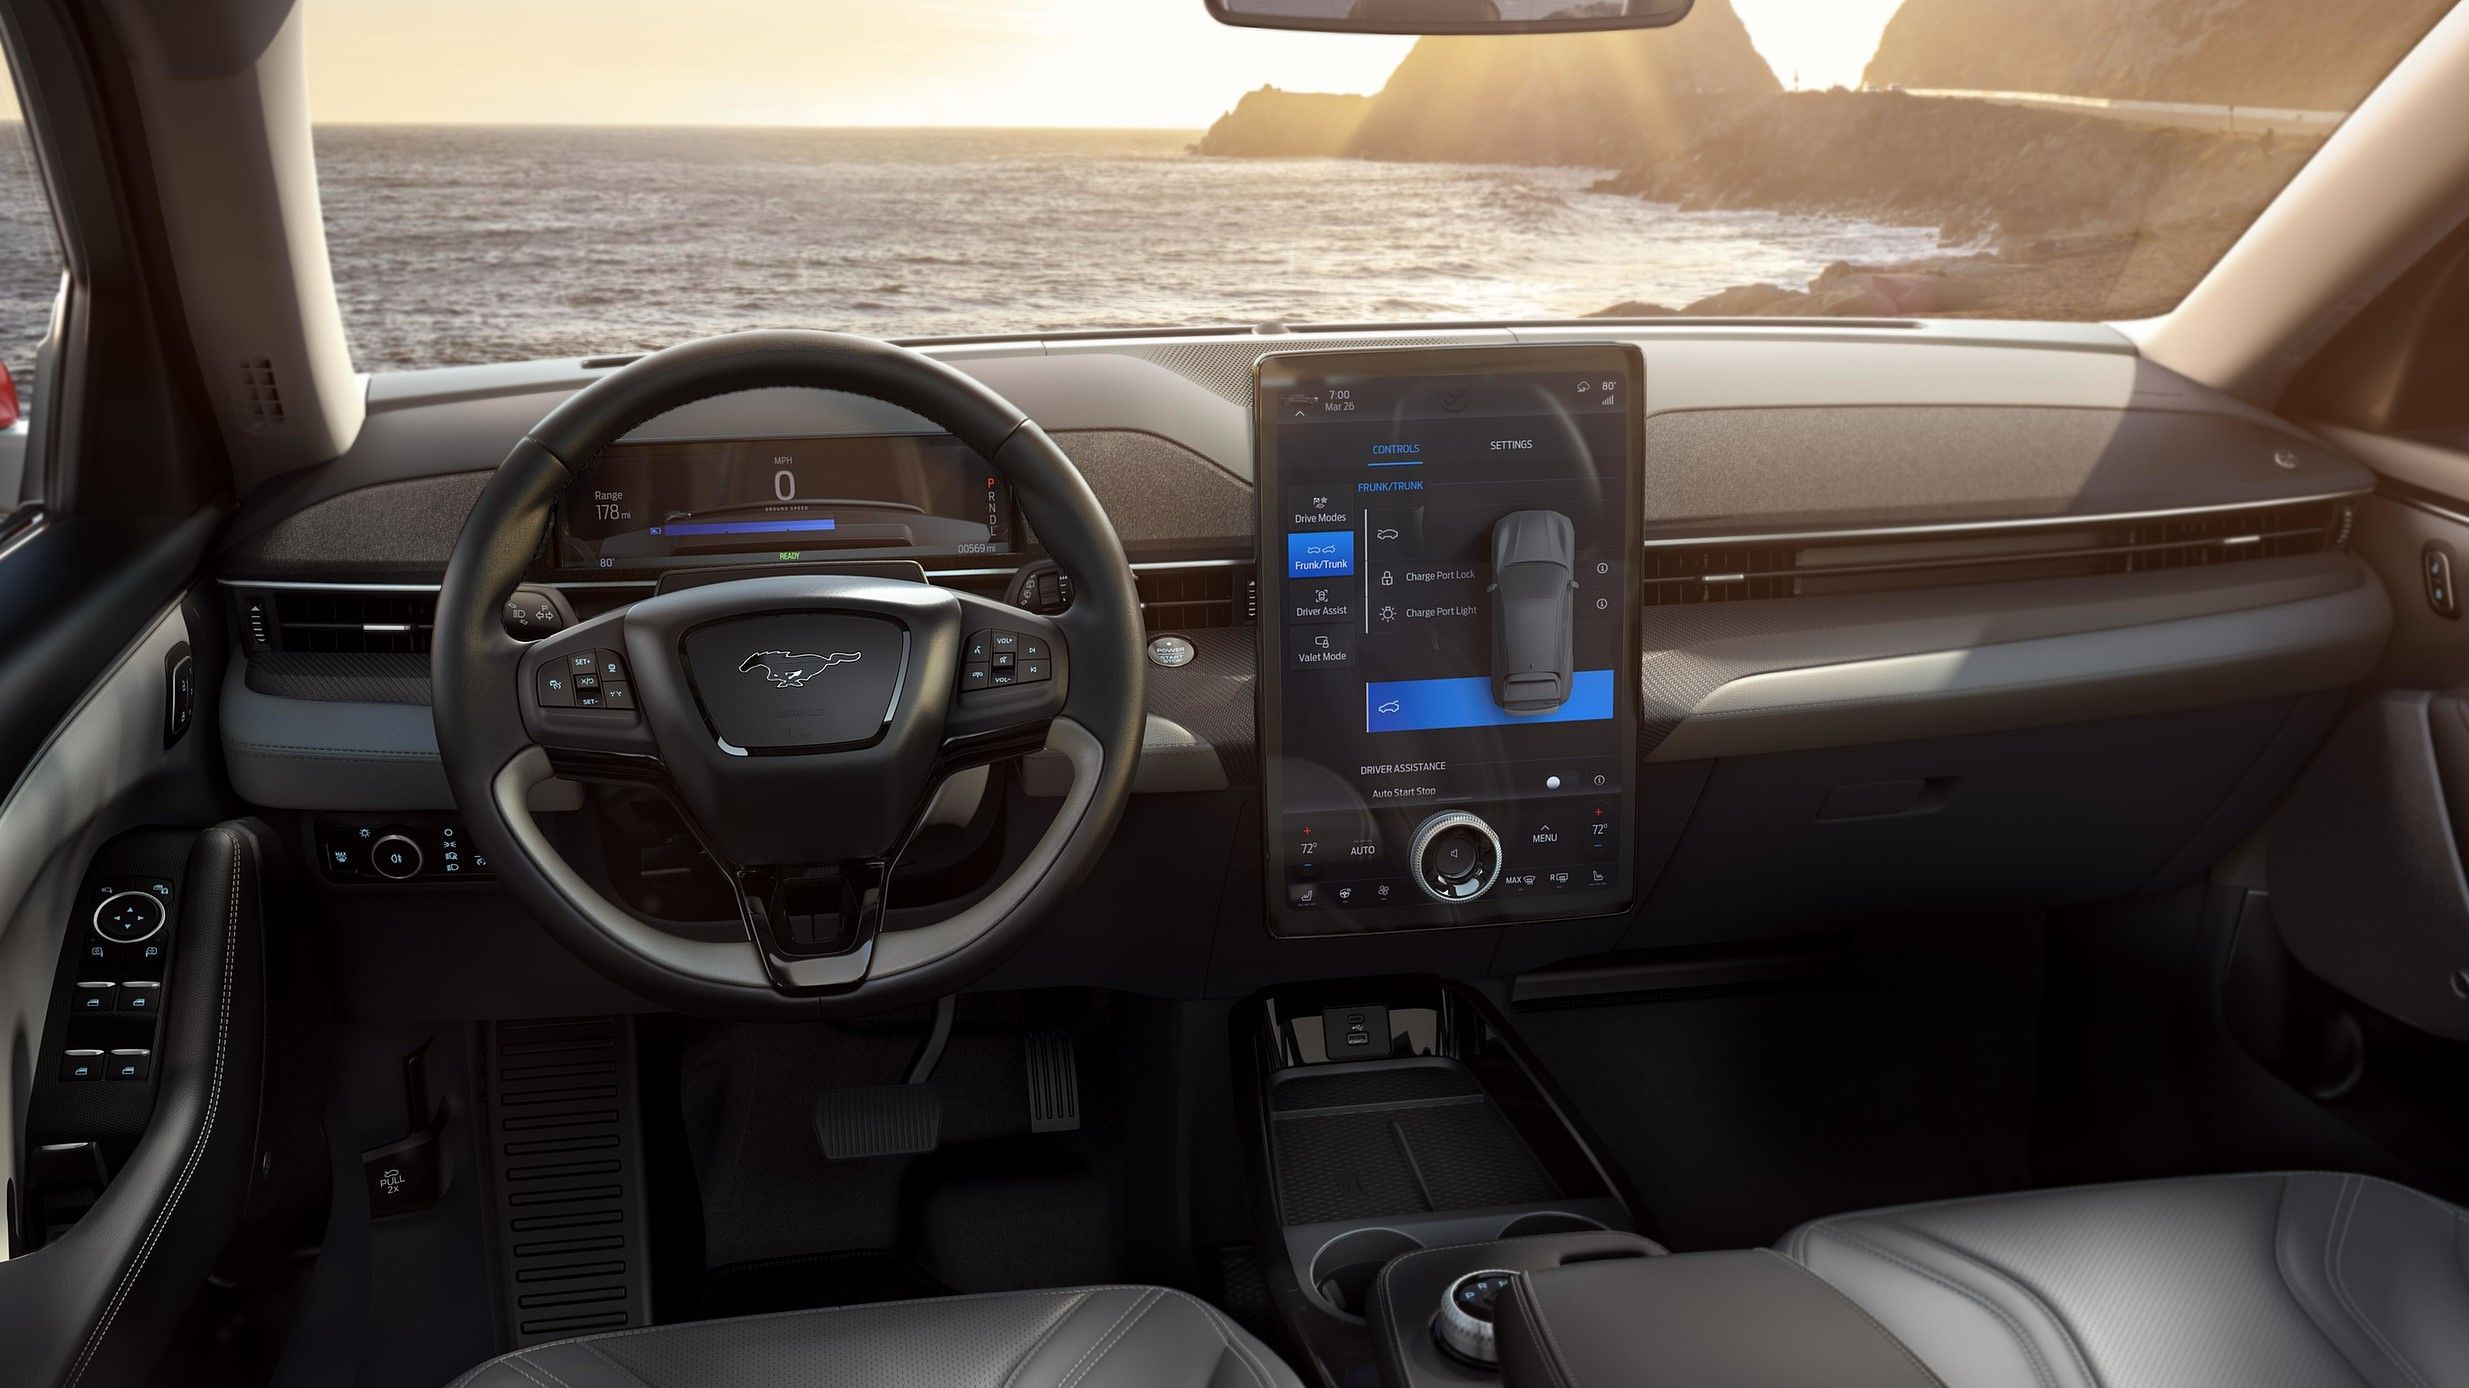 2021 ford mustang mach e interior dashboard view